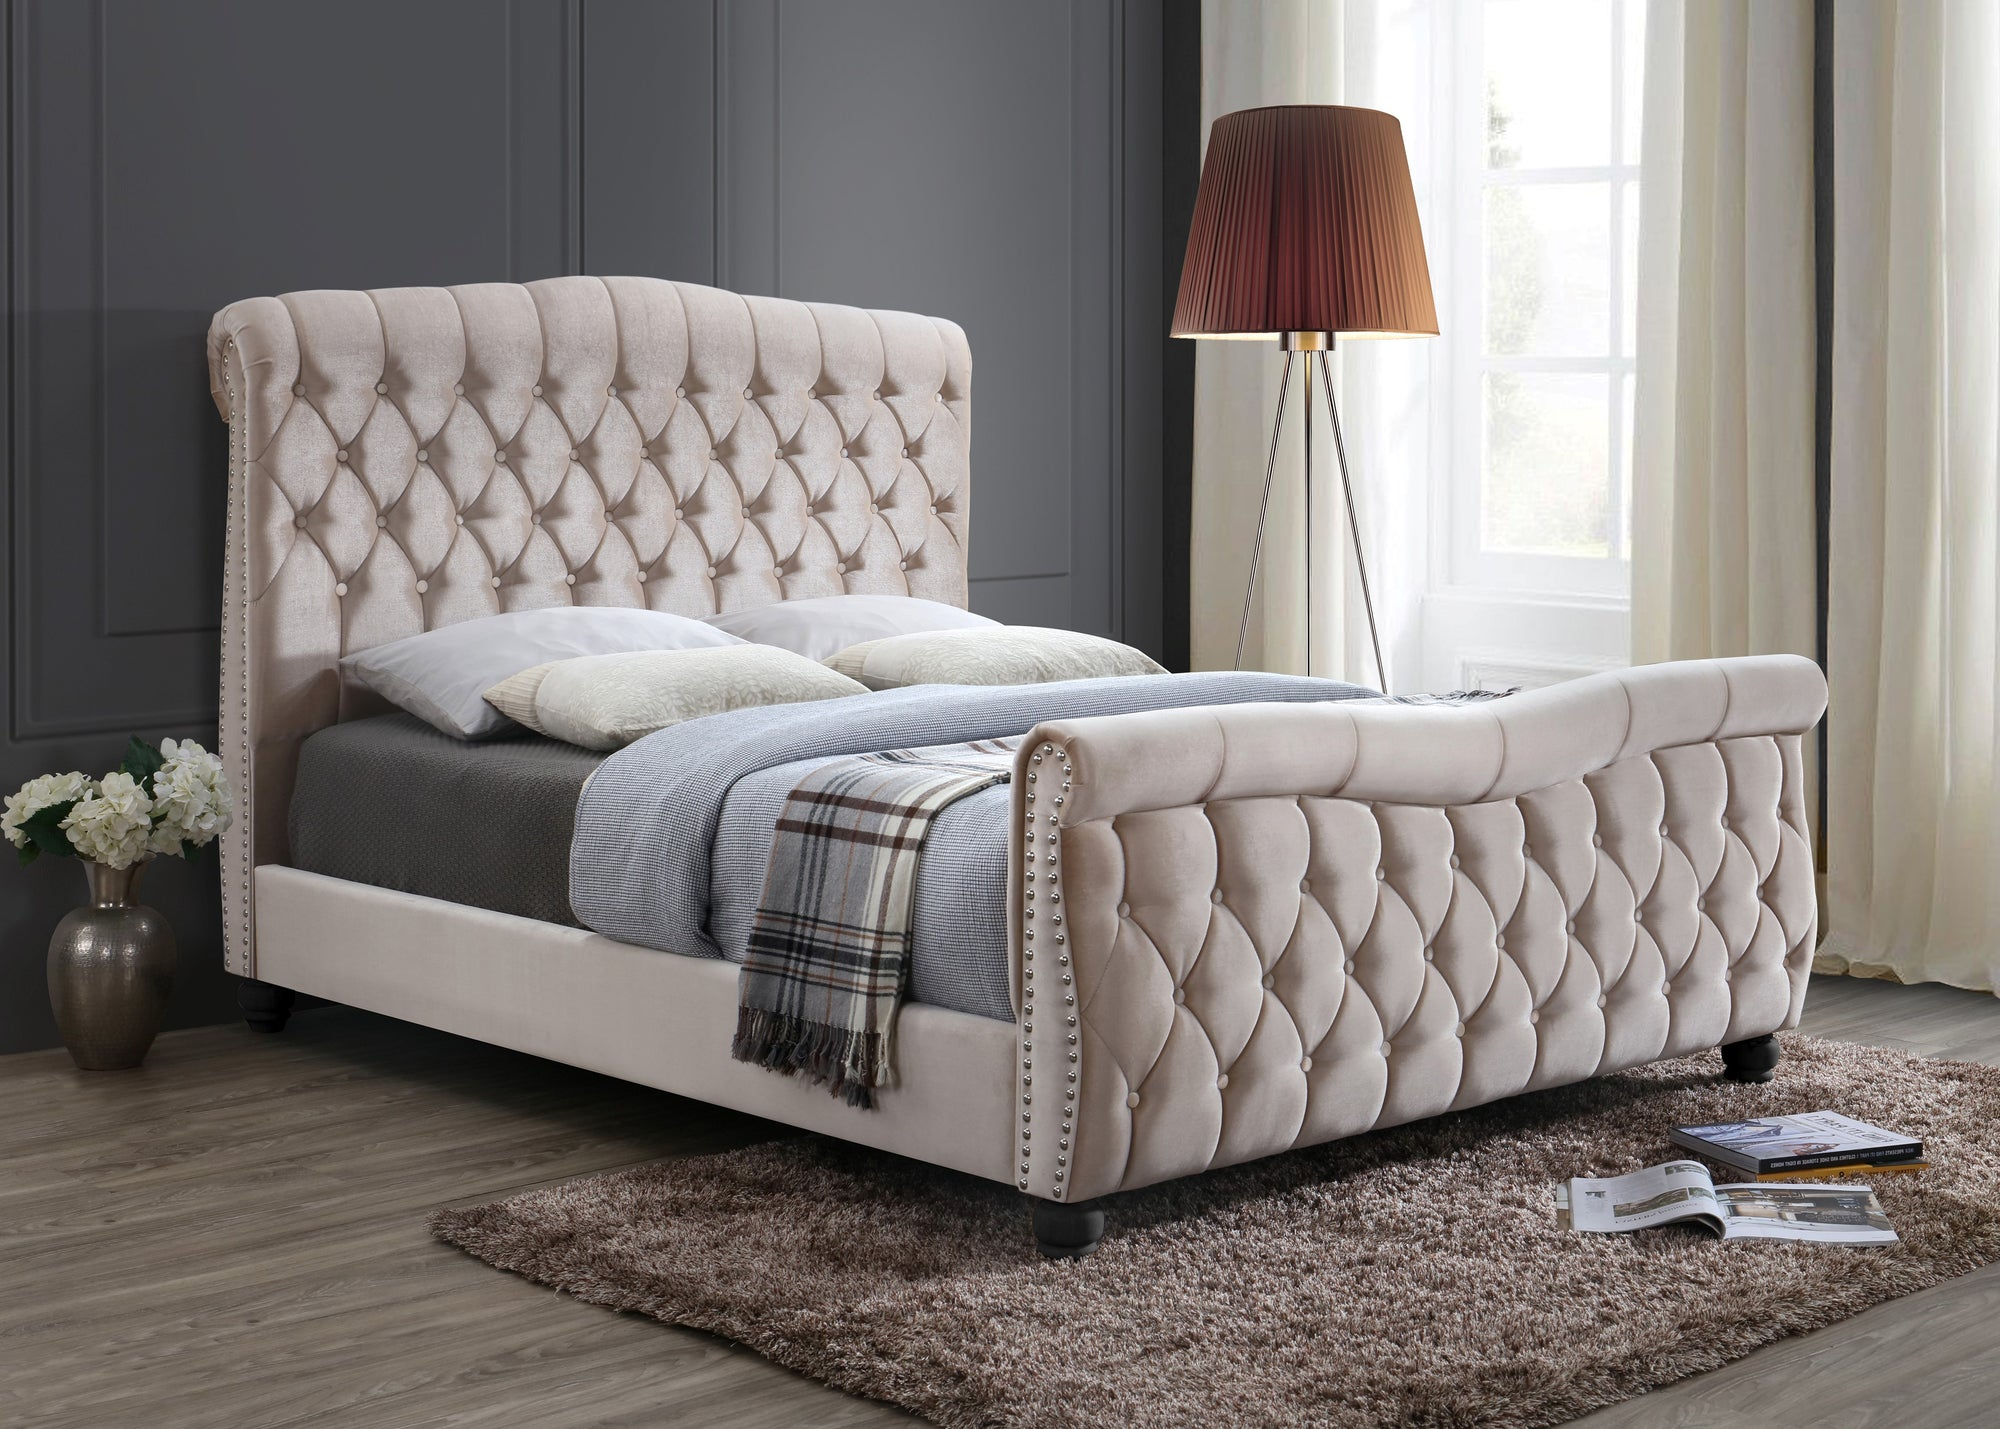 - Windsor Chesterfield Upholstered Sleigh Bed - Chic Concept